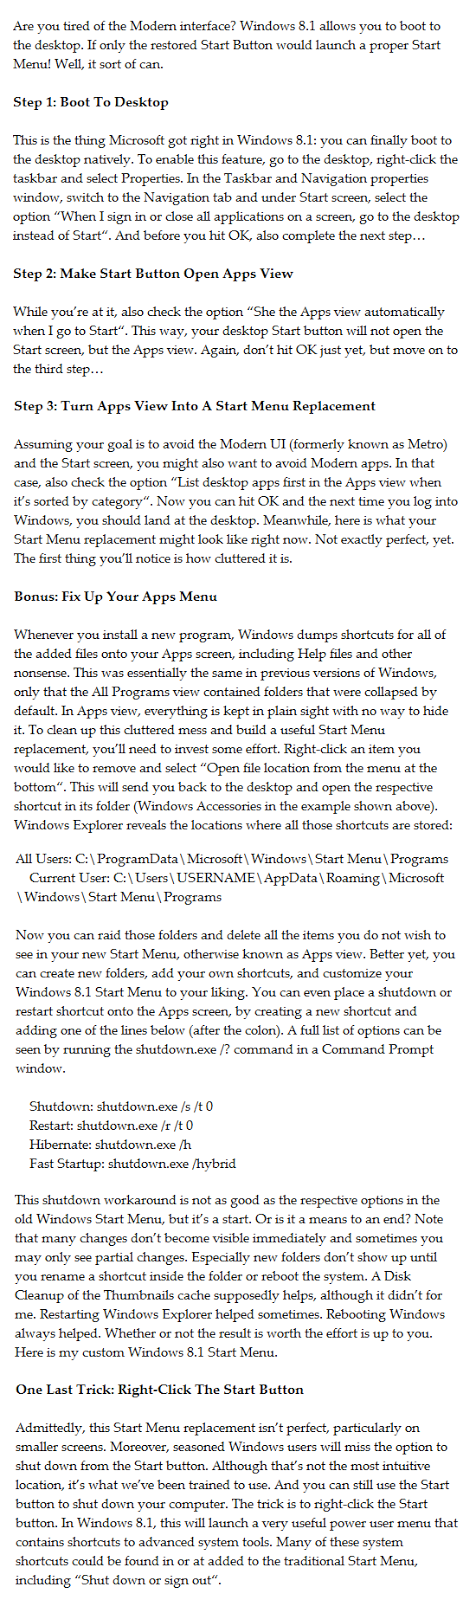 How to get normal start menu in windows 8 and Windows 8.1